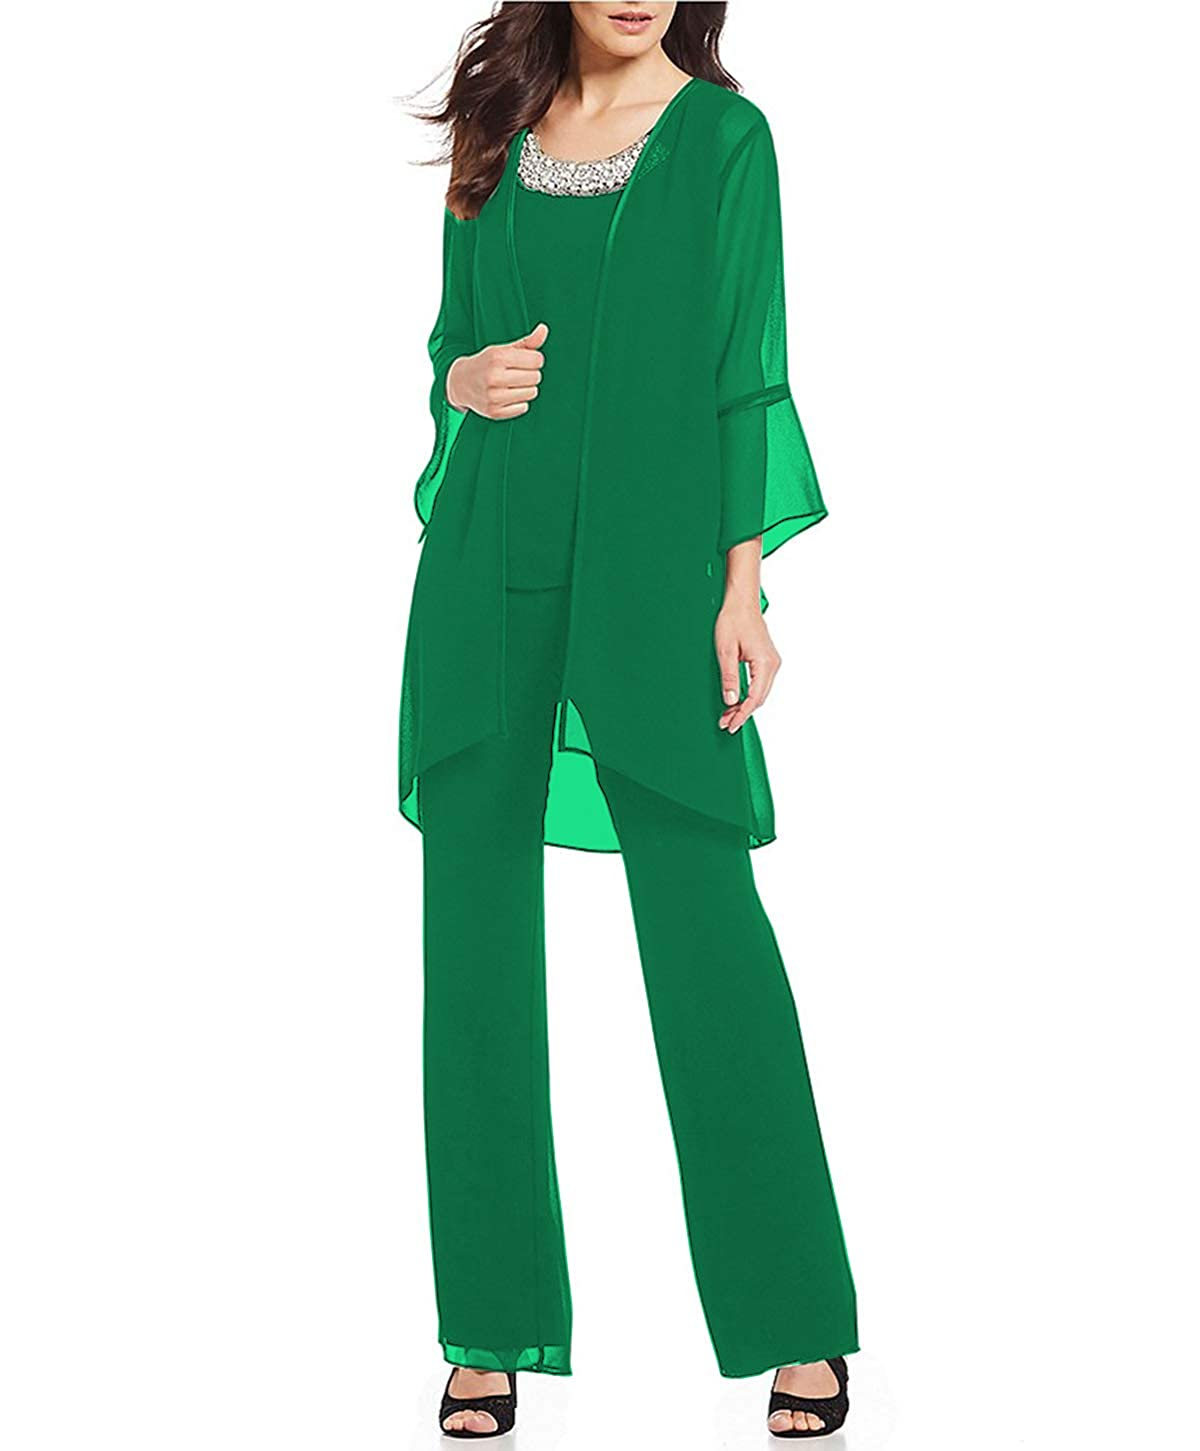 Green Aesido Women's Mother of The Bride Pant Suits 3 Pieces Evening Special Occasion Dress Ouftit Groom Wedding